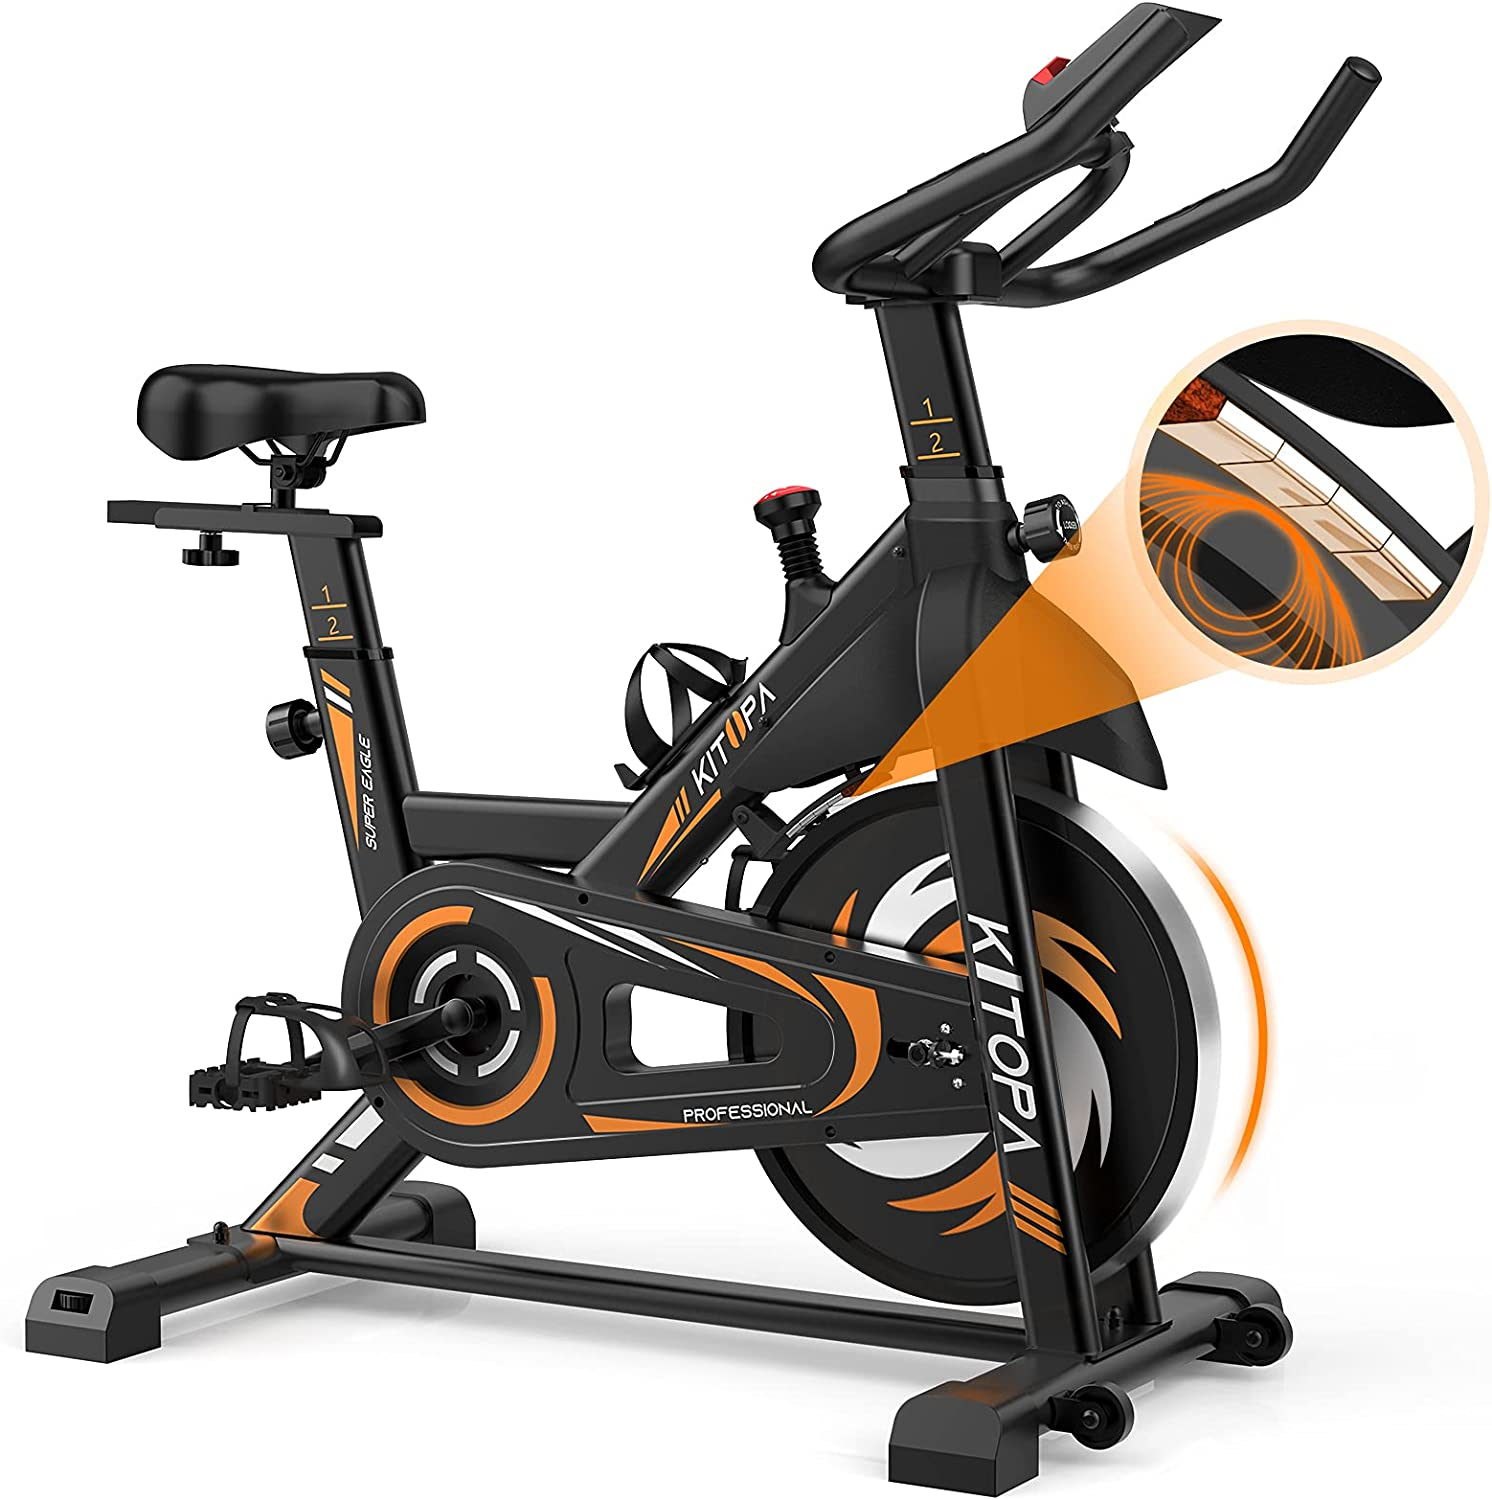 Exercise Free Shipping Cheap Bargain Gift Bike - Max 78% OFF Kitopa Quie Stationary Magnetic Resistance